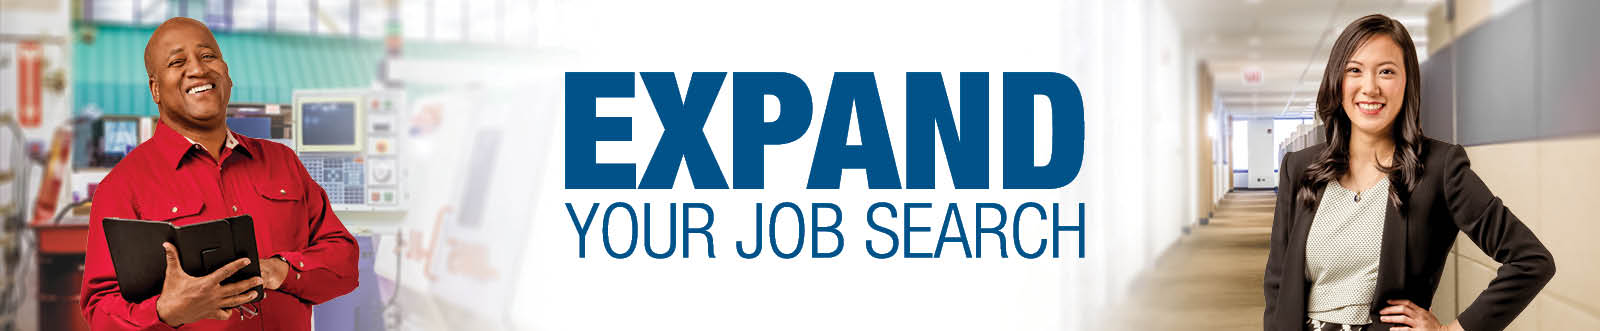 Express Employment Professionals is a leading staffing provider in the U.S., Canada and South Africa. Every day, we help job seekers find work and help businesses find qualified employees.